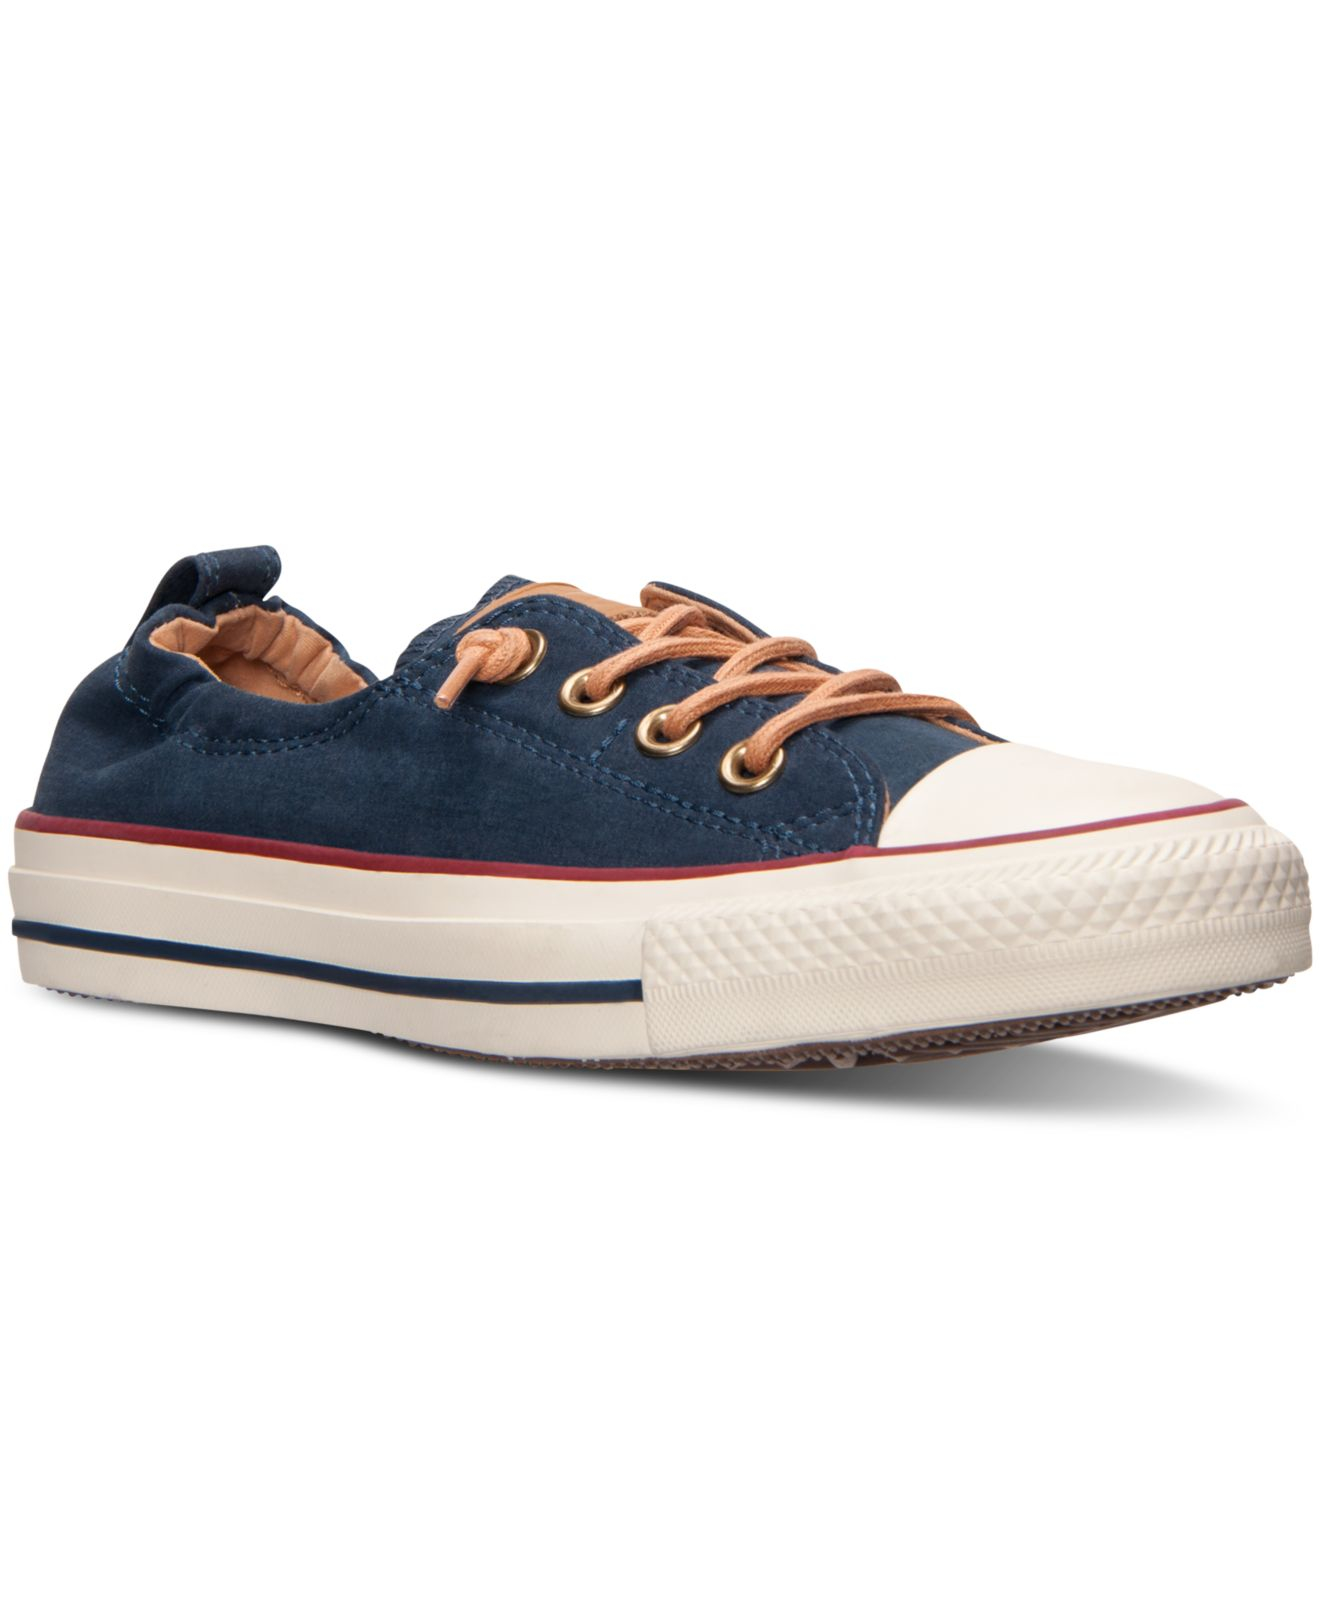 uk availability 26f30 9aa73 Lyst - Converse Women s Chuck Taylor Shoreline Peached Canvas Casual ...  women s converse chuck